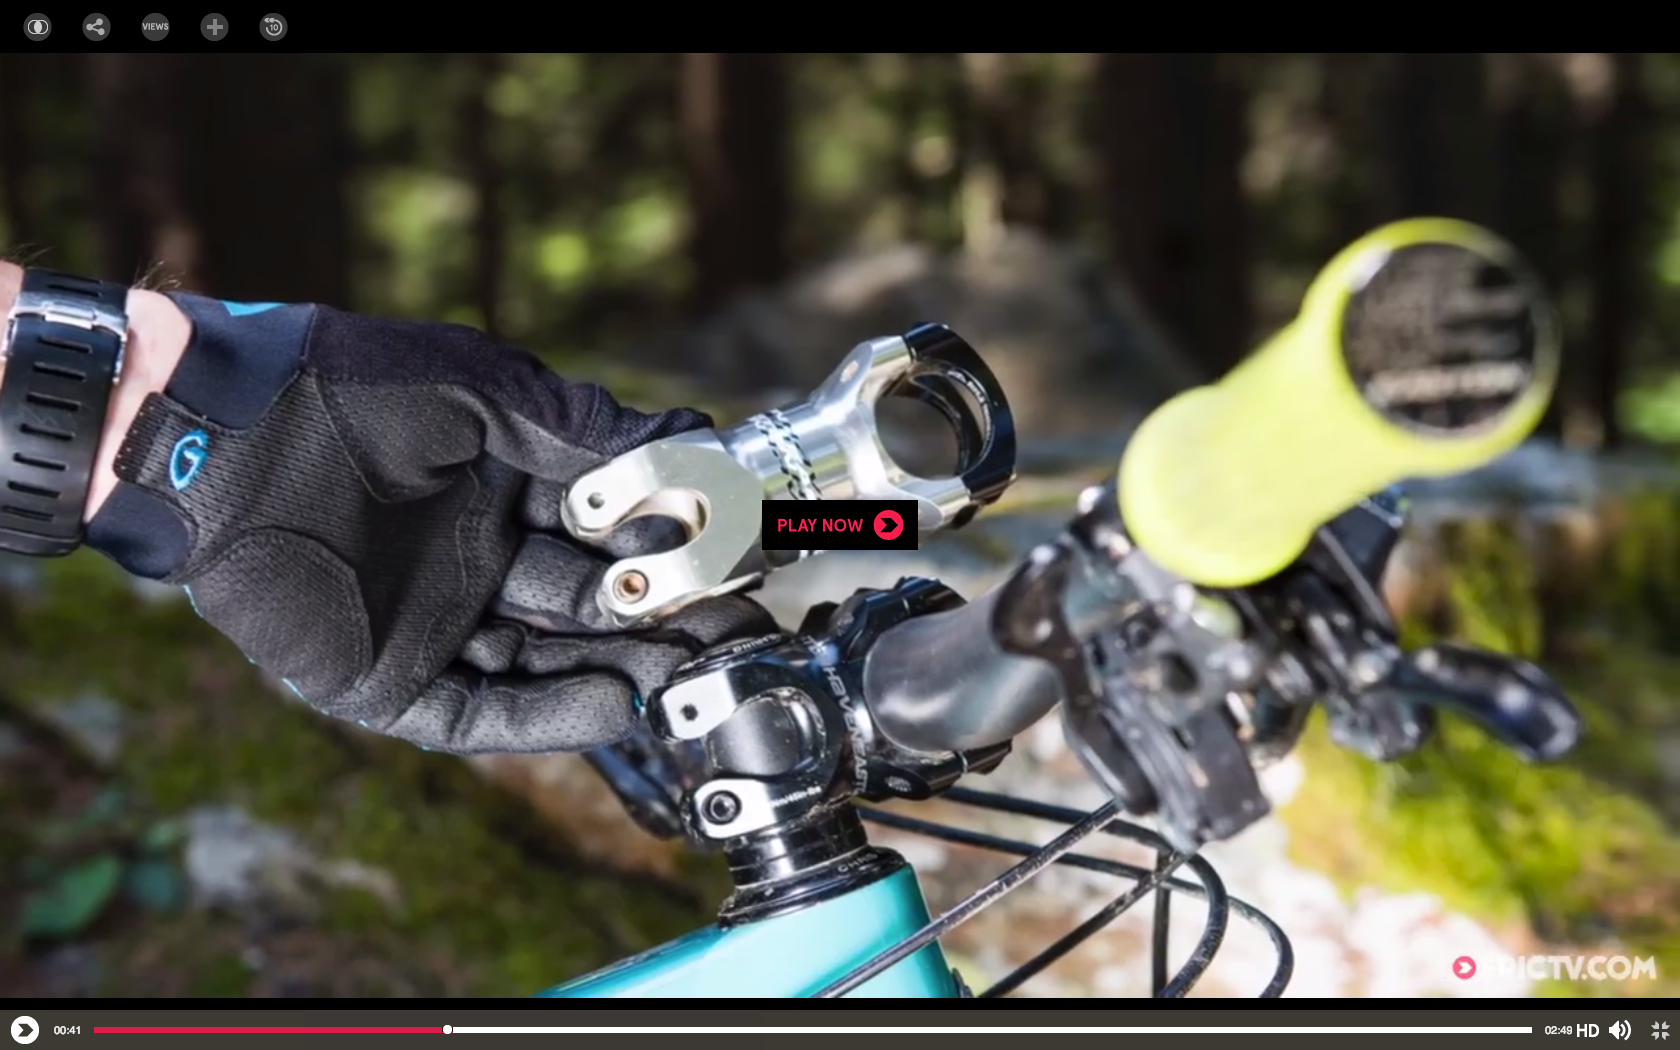 How To Rig The Perfect Bike Setup - Fundamentals | Trail Doctor